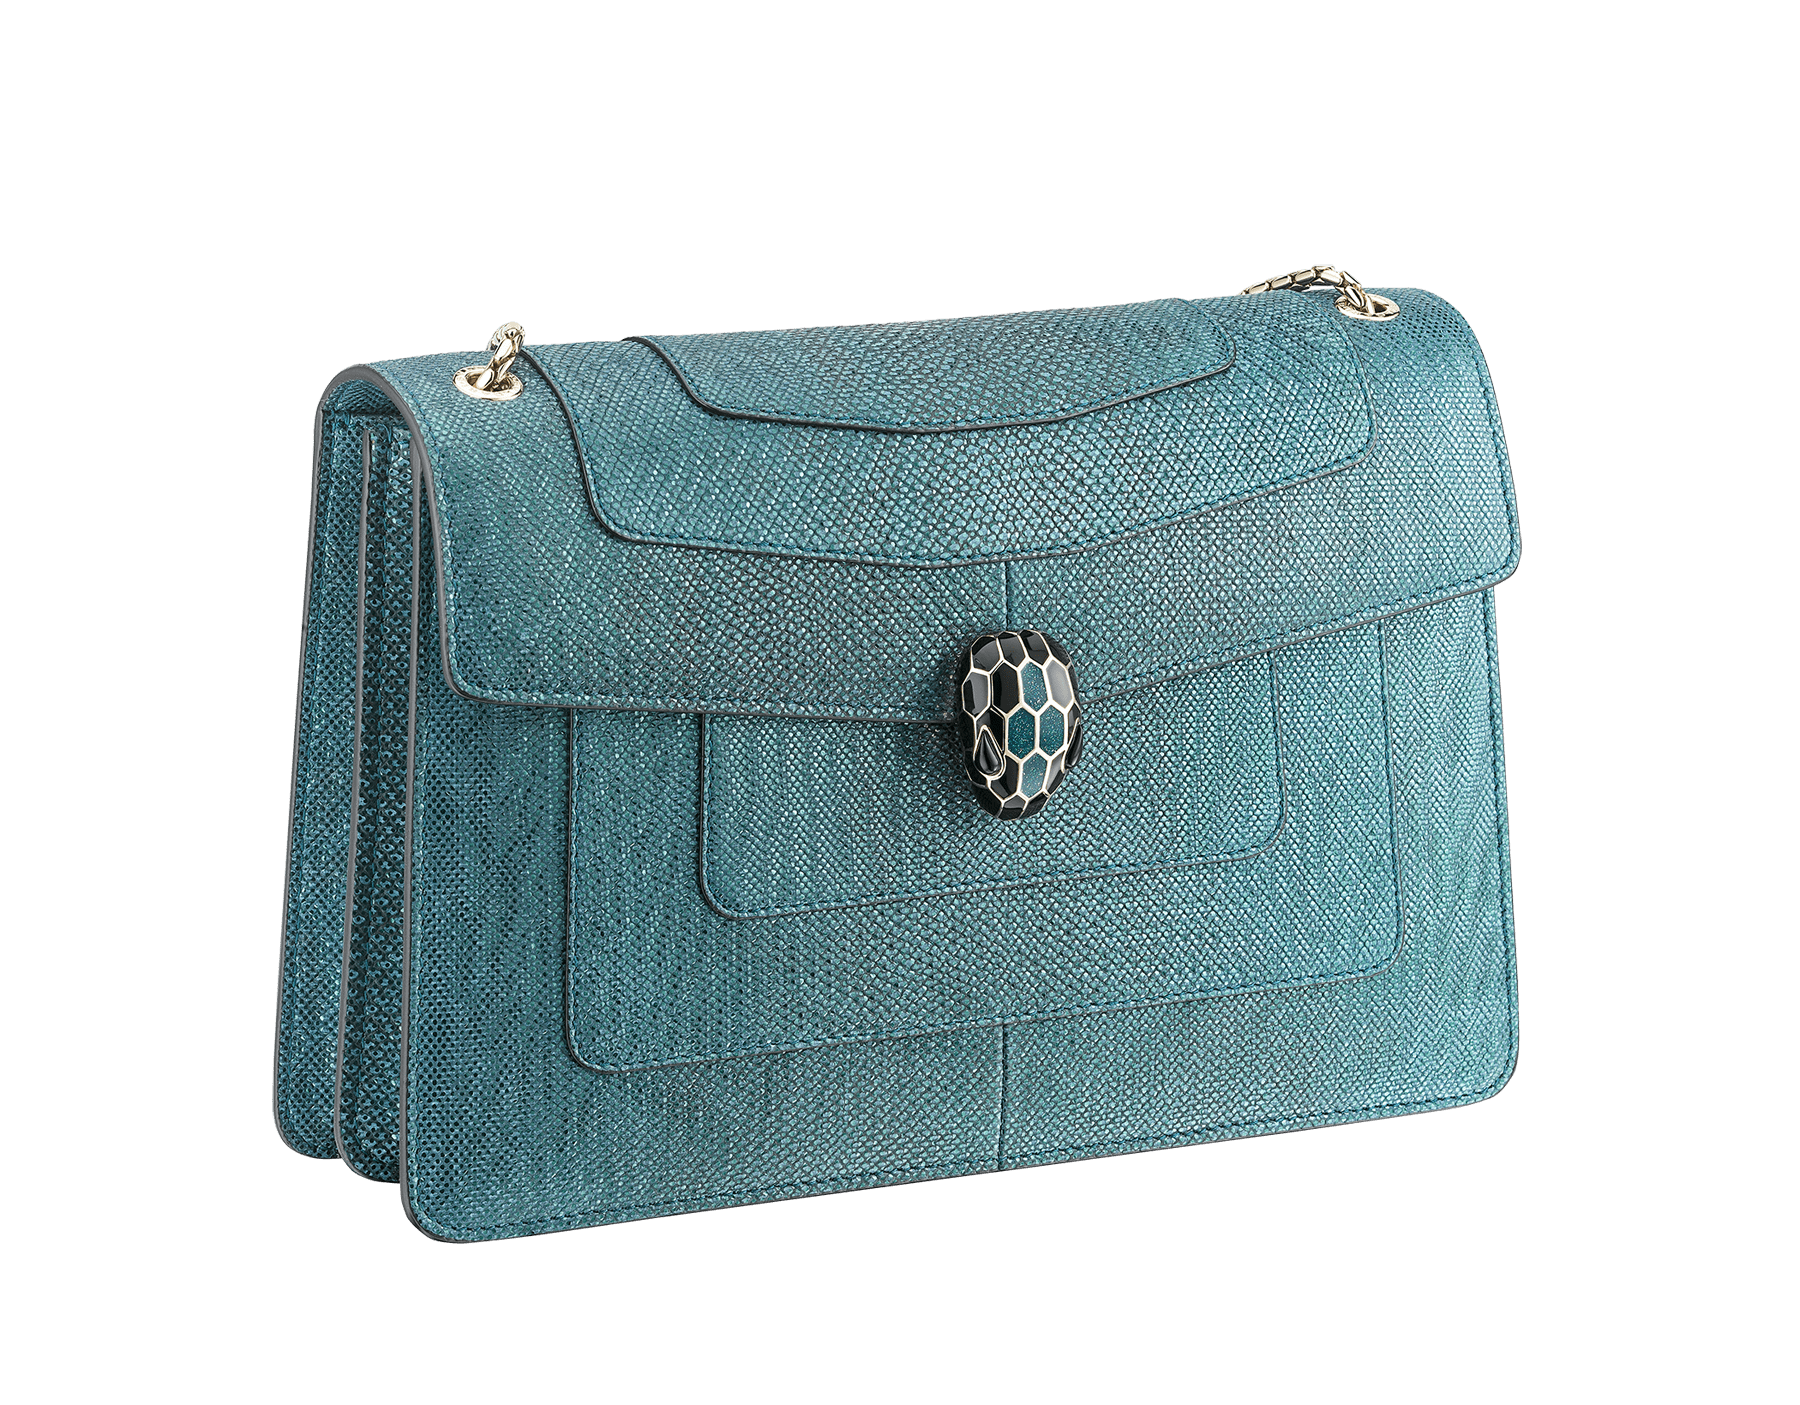 """""""Serpenti Forever"""" shoulder bag in deep jade metallic karung skin. Iconic snakehead closure in light gold-plated brass enriched with black and glitter deep jade enamel and black onyx eyes. 287940 image 2"""